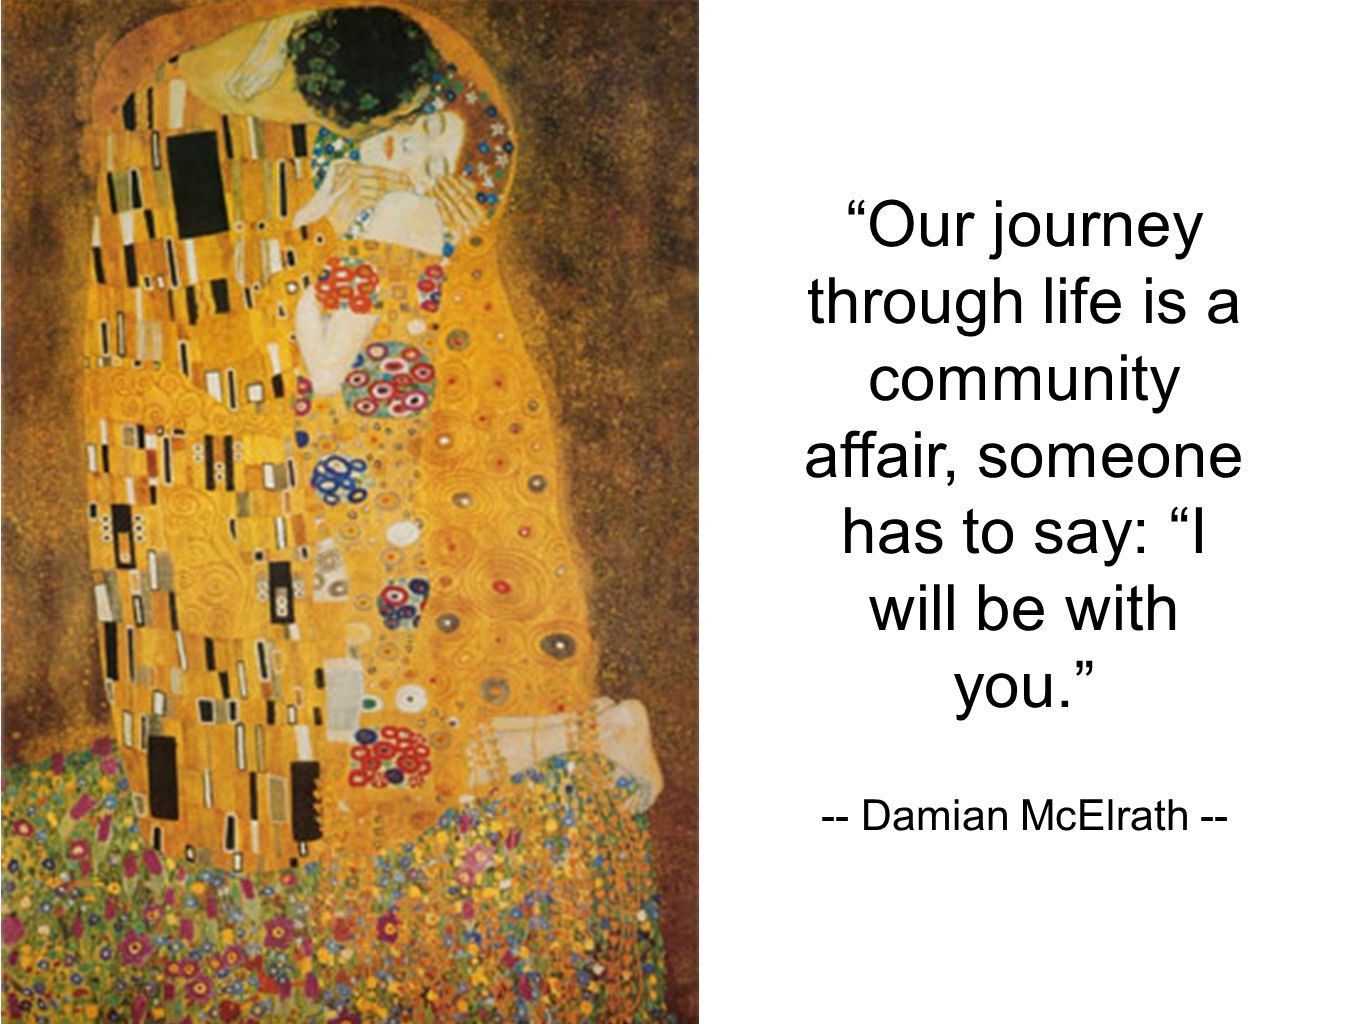 Our journey through life is a community affair, someone has to say: I will be with you.